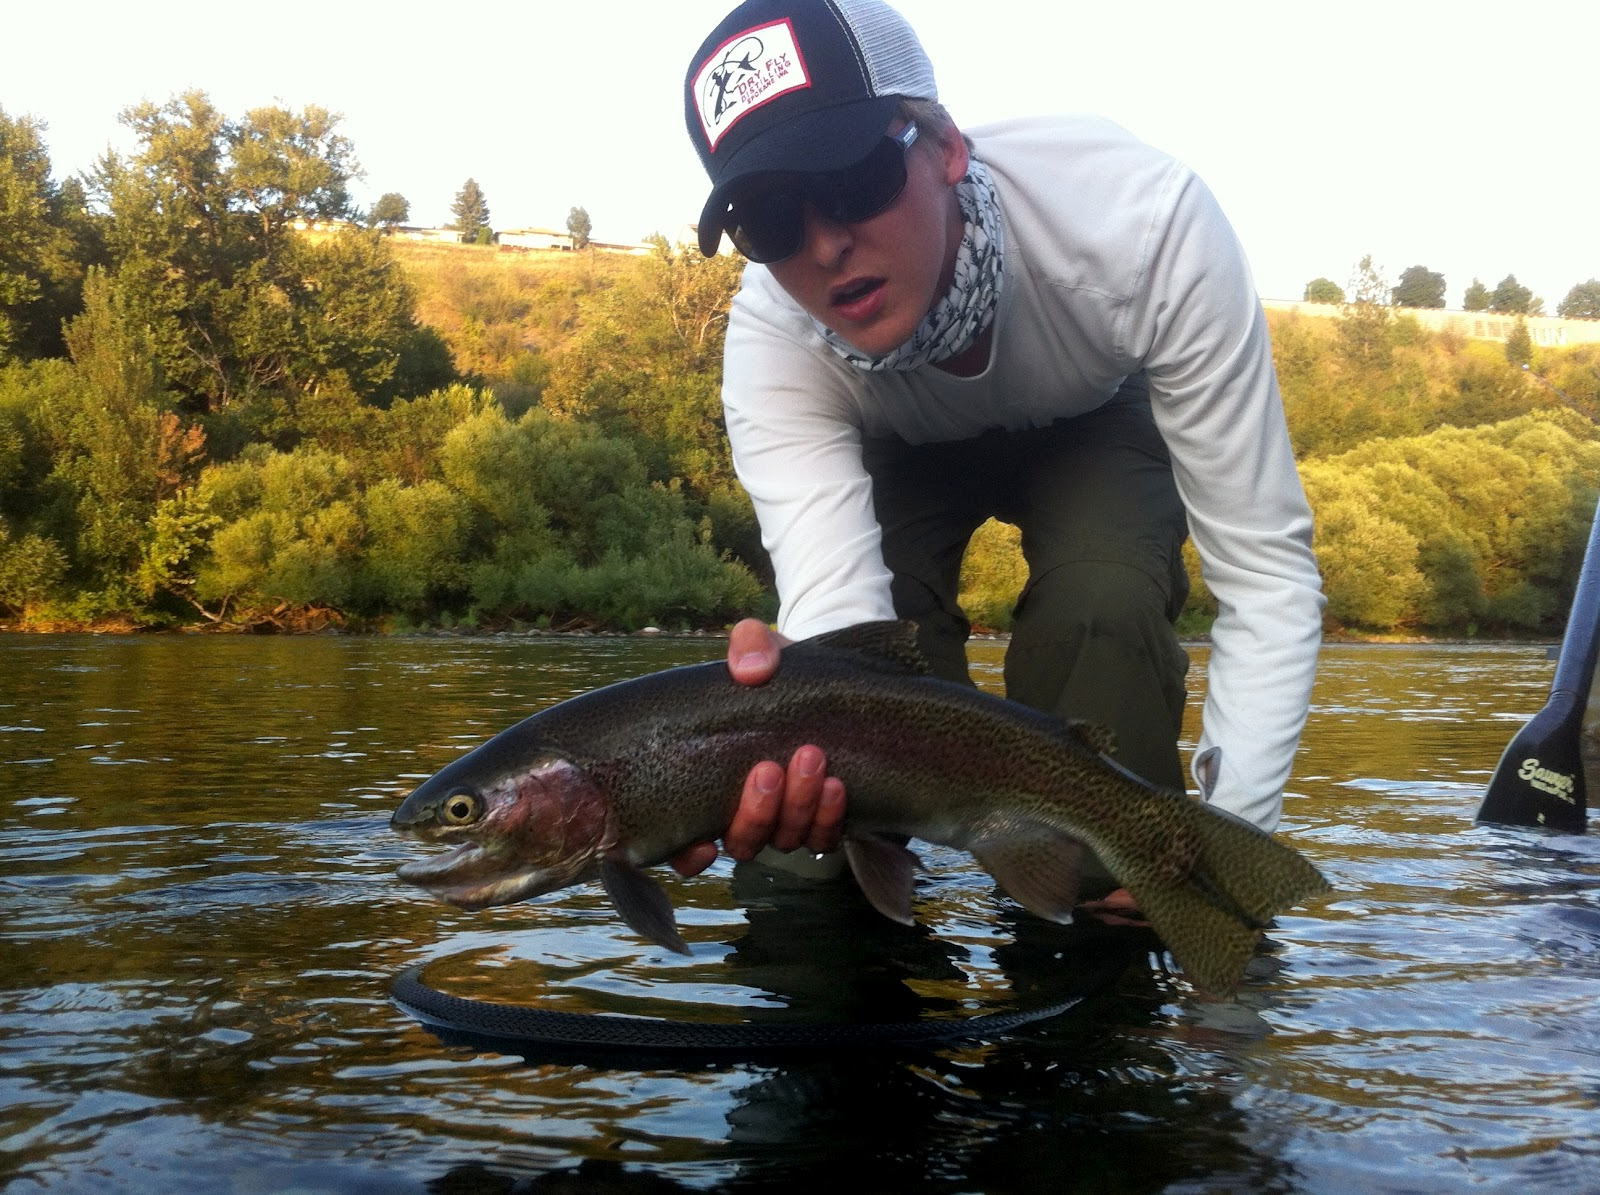 Skinny waders a fly fishing blog july 2012 for Spokane river fishing